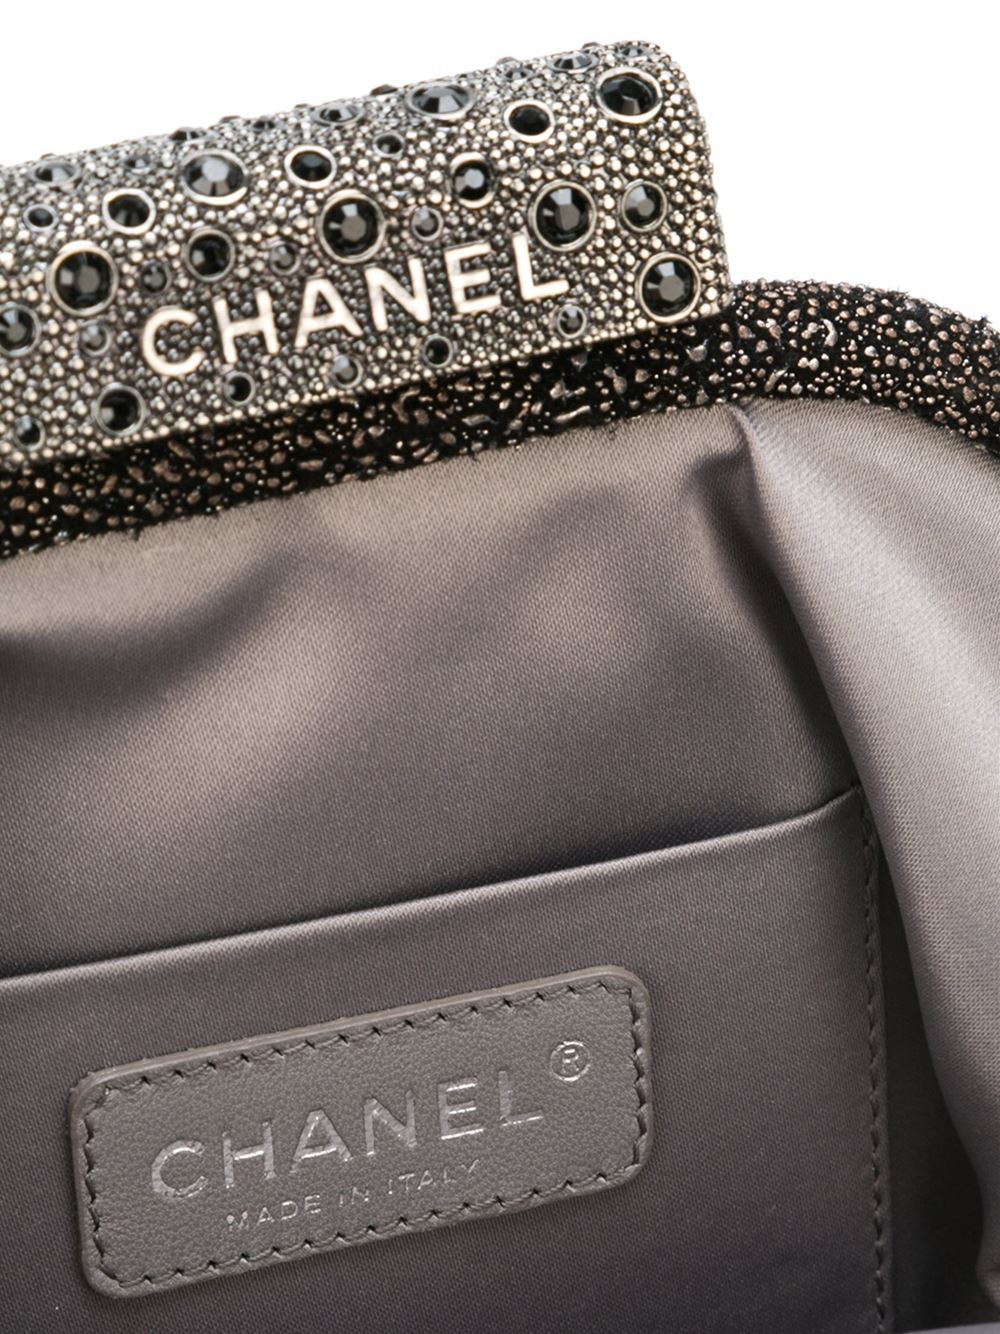 Chanel Degradé Stingray Clutch In New never worn Condition For Sale In London, GB